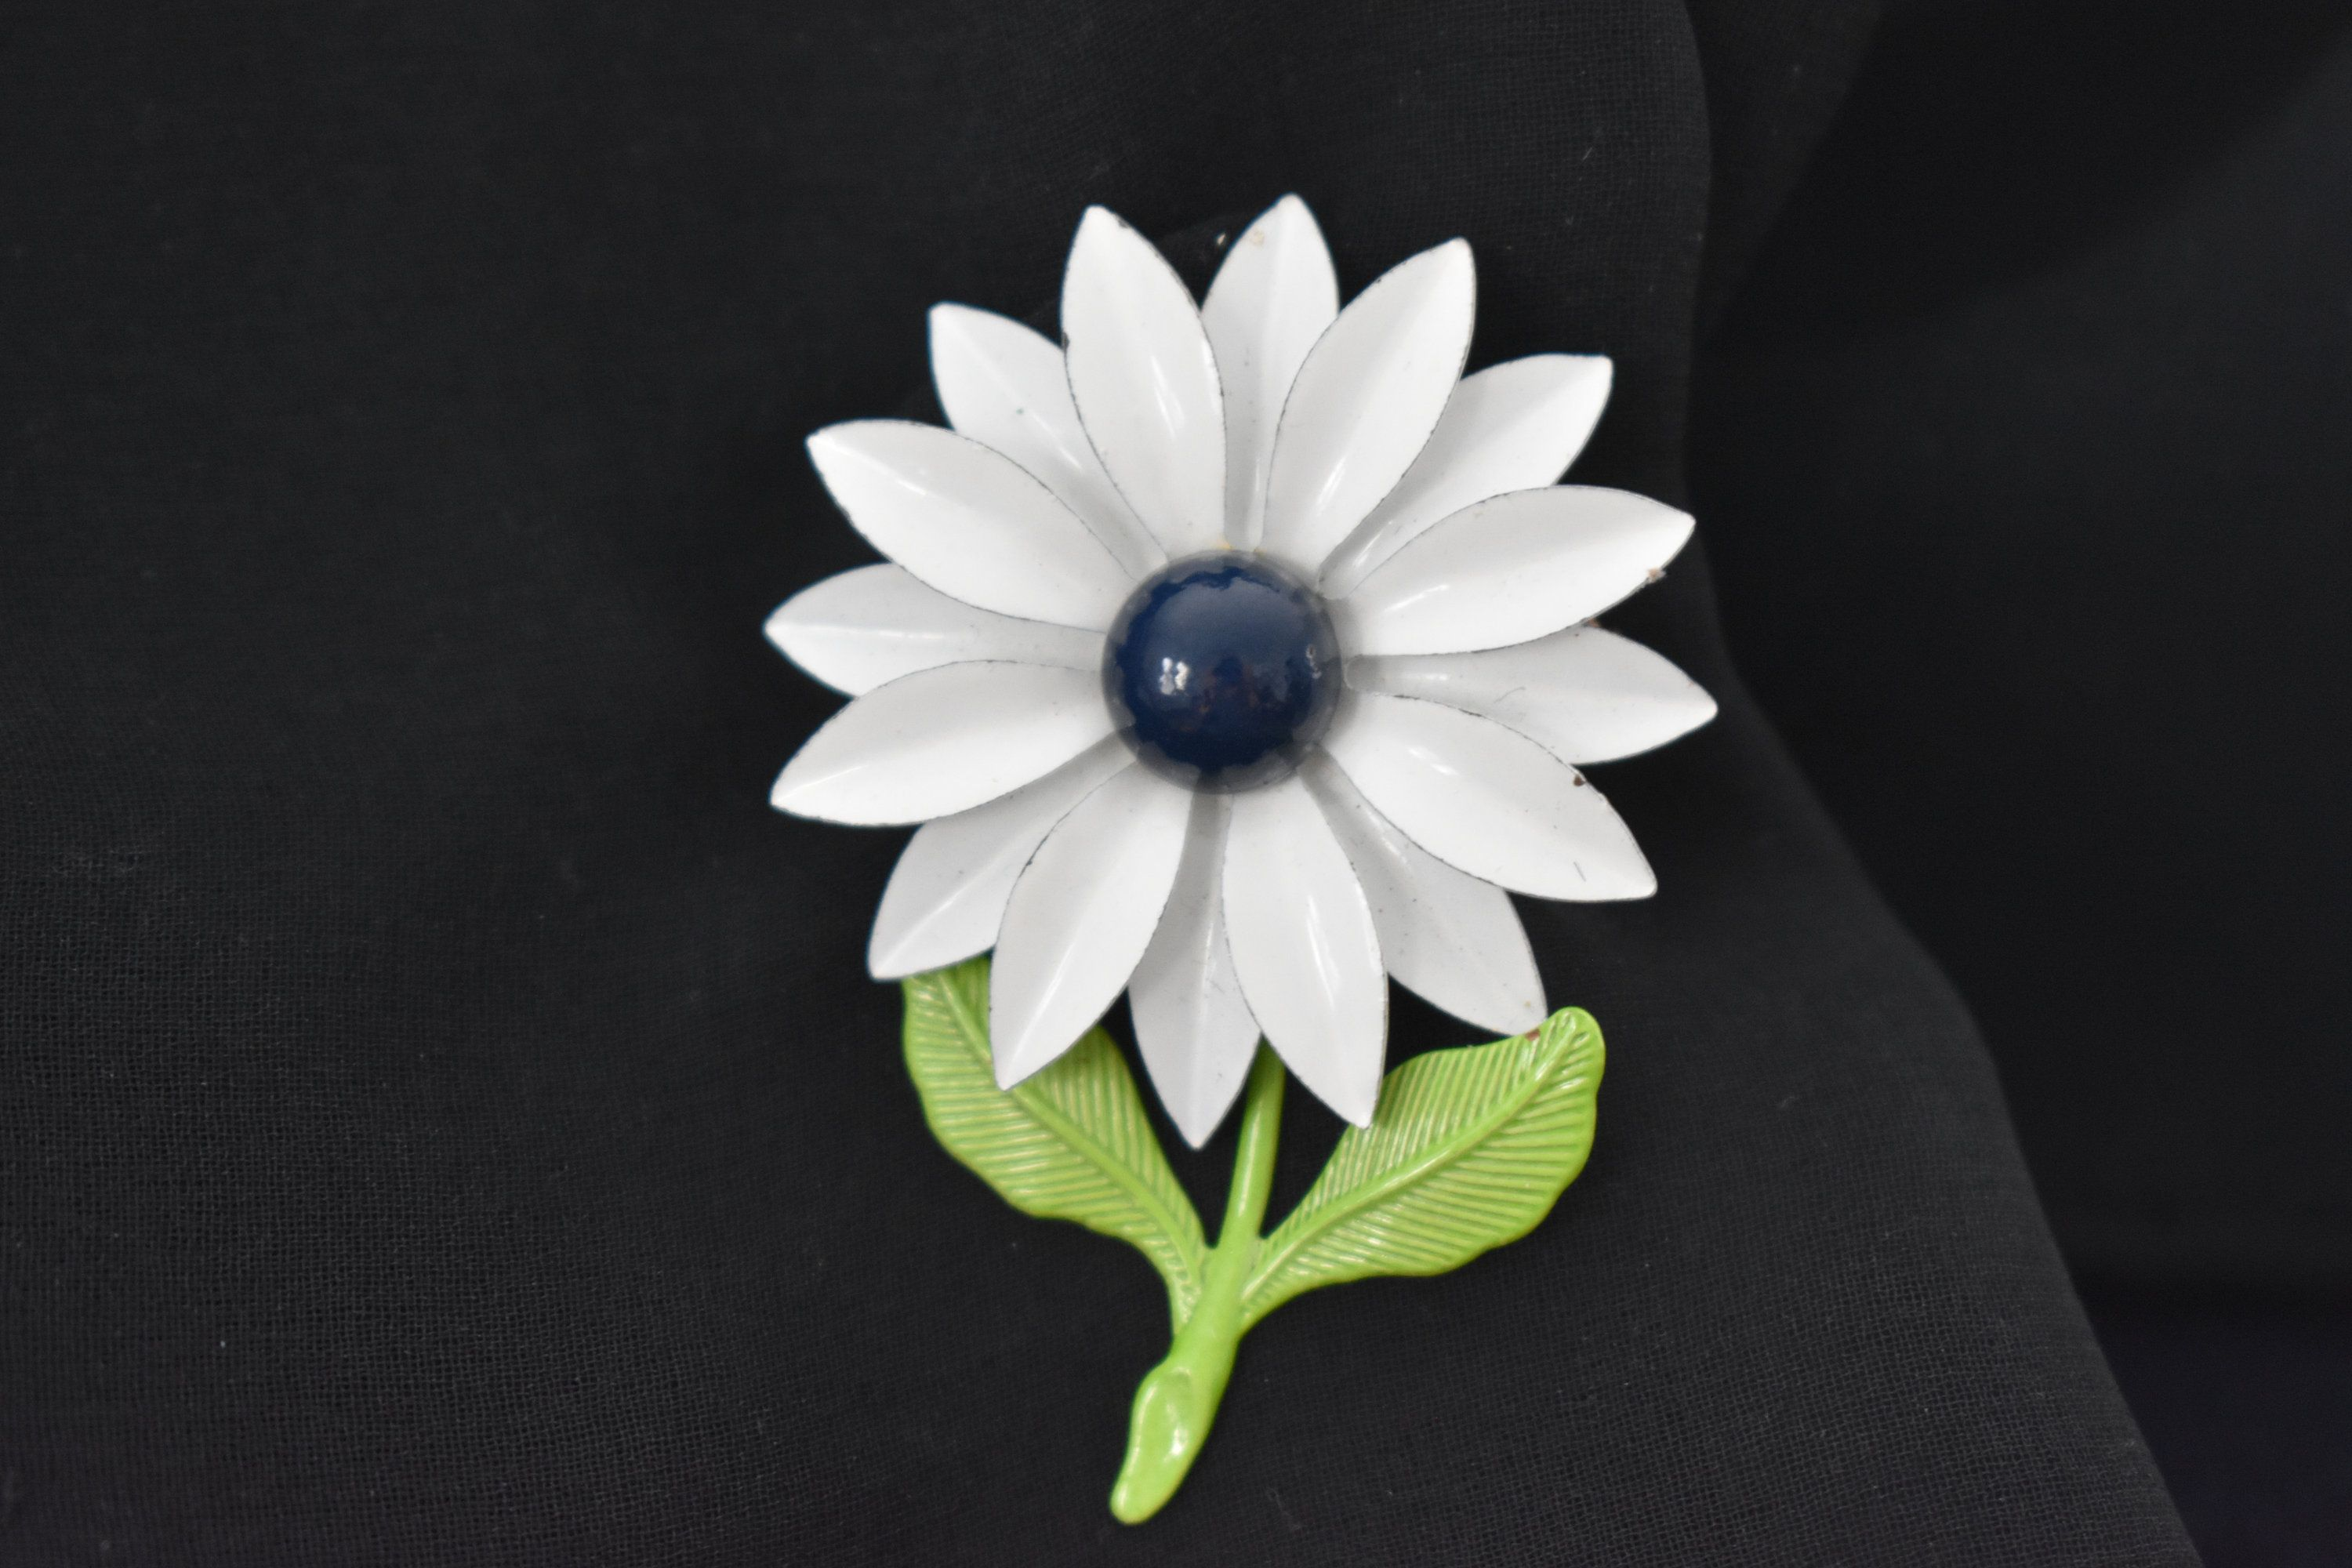 Brooch white enamel daisy with blue center and green leaves vintage brooch white enamel daisy with blue center and green leaves vintage izmirmasajfo